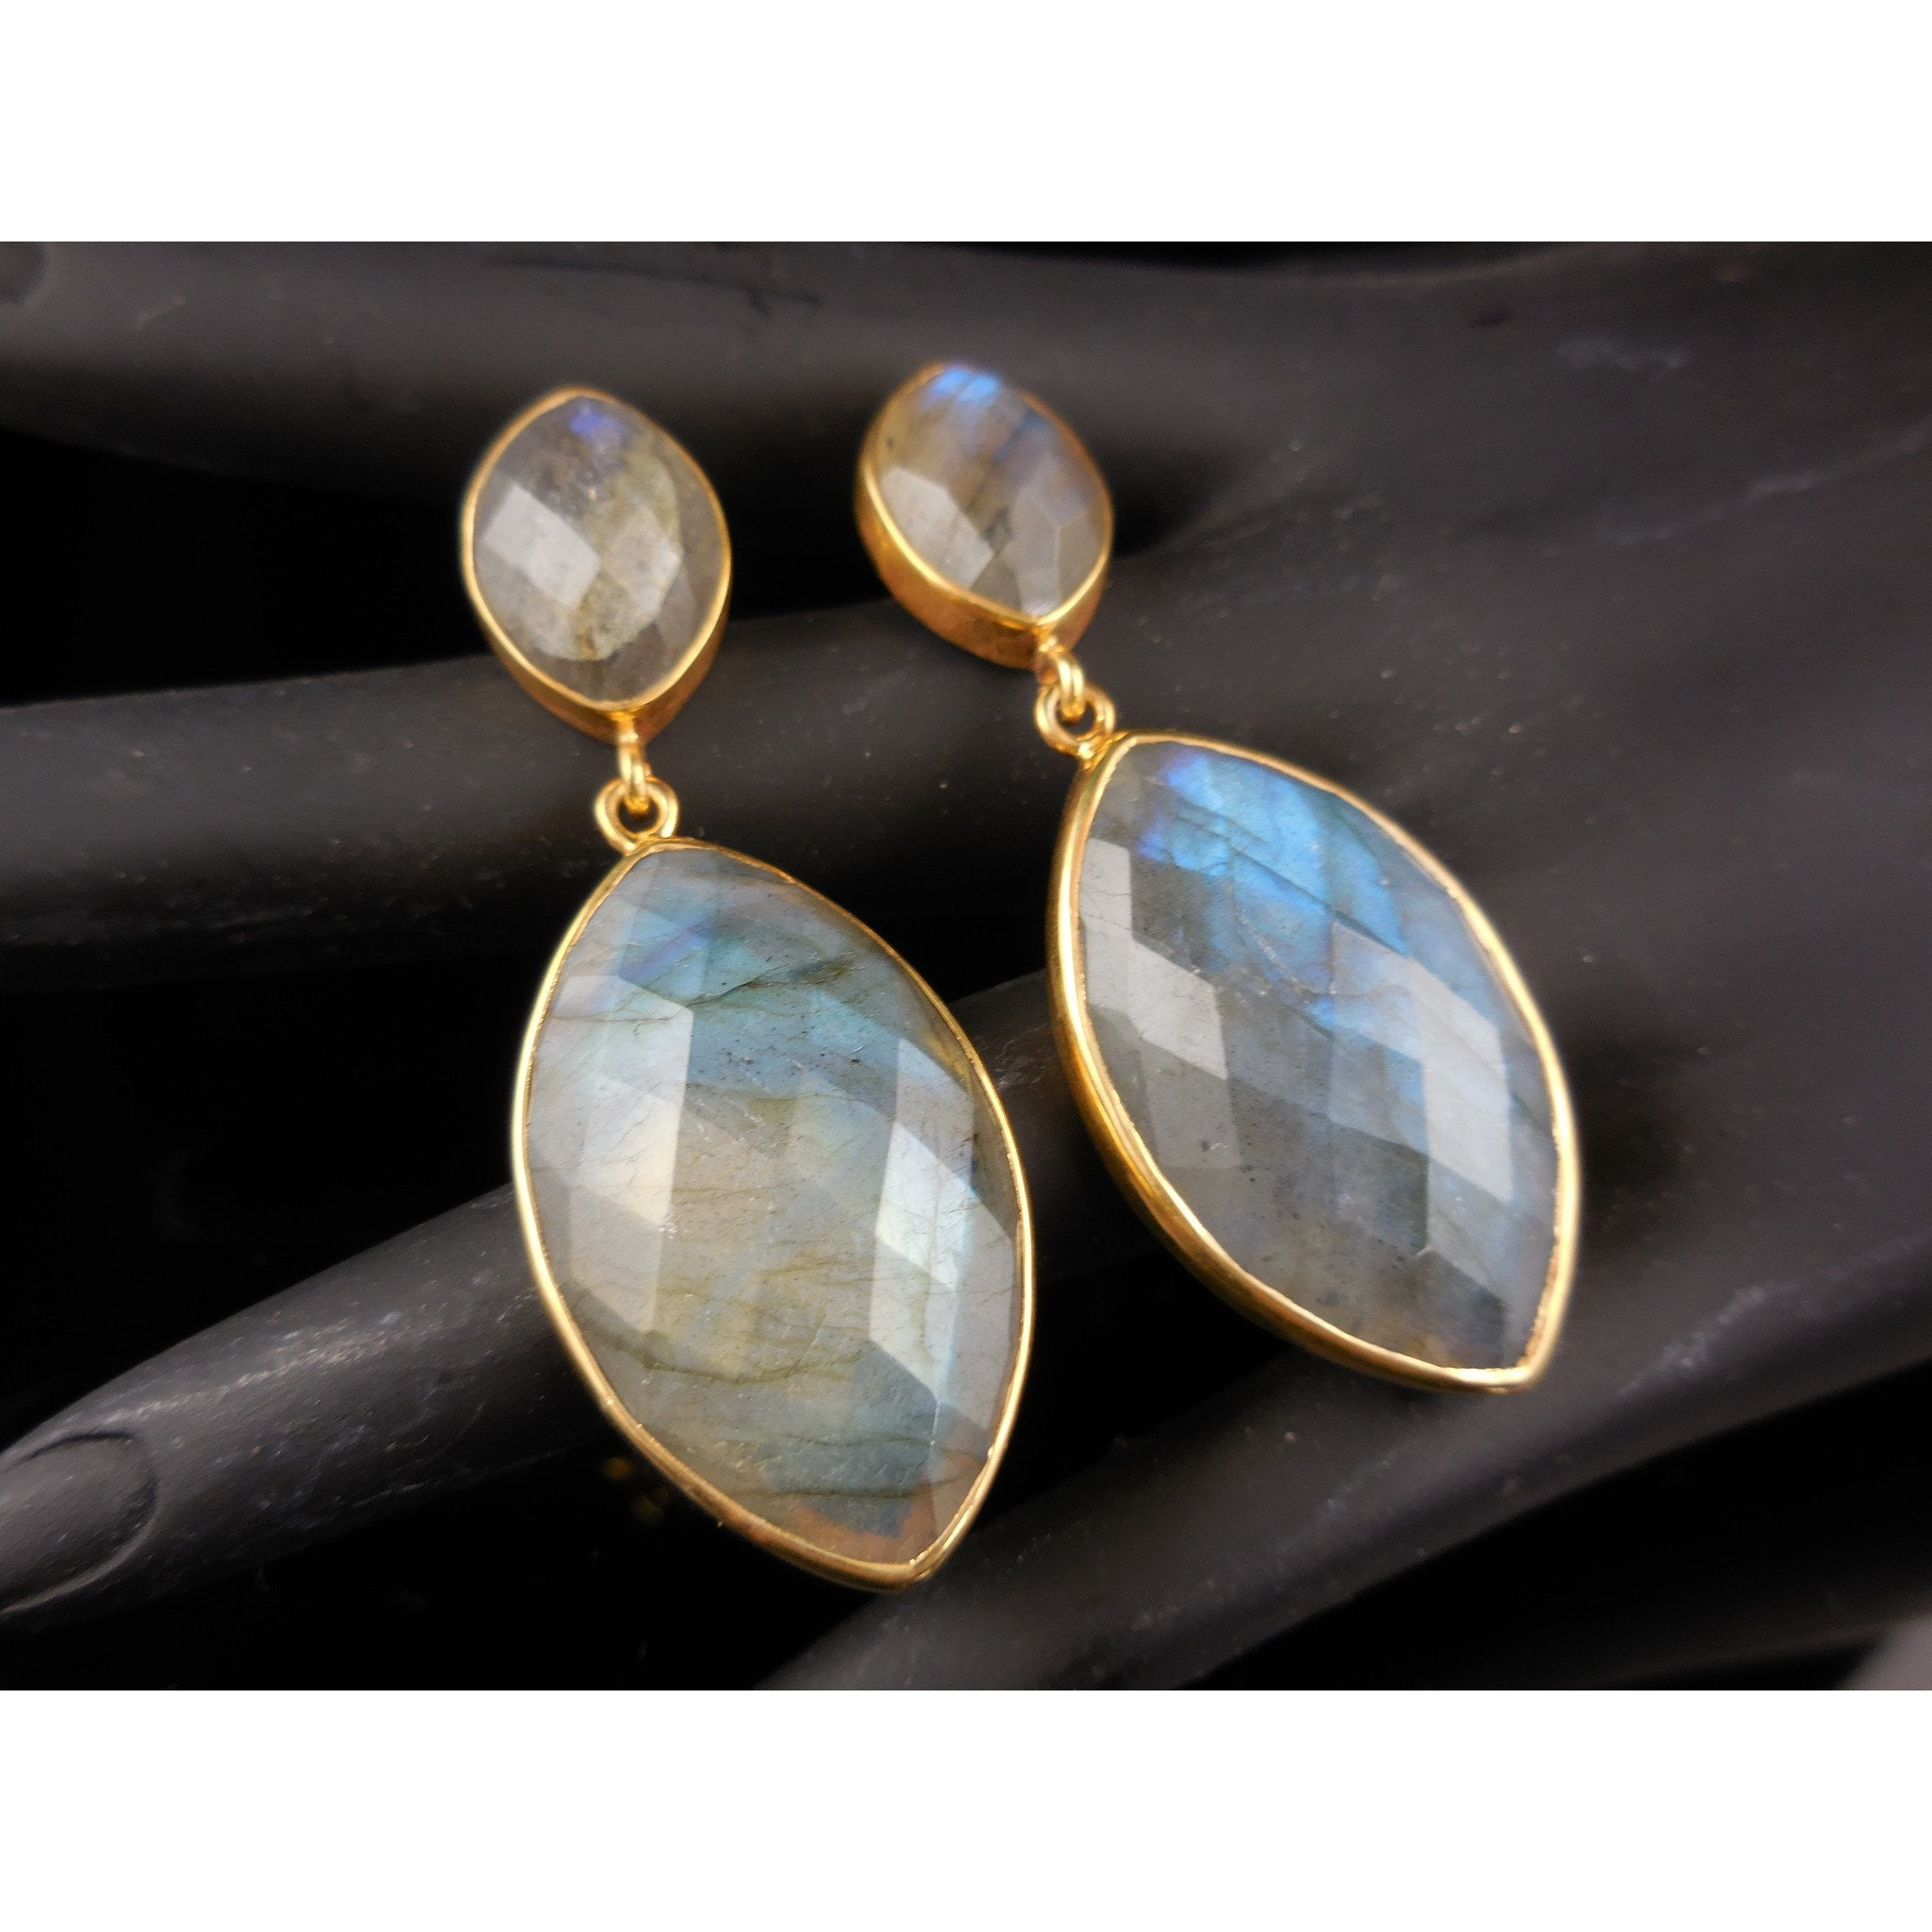 Labradorite Gemstone with Vemeil Drop Post Earrings